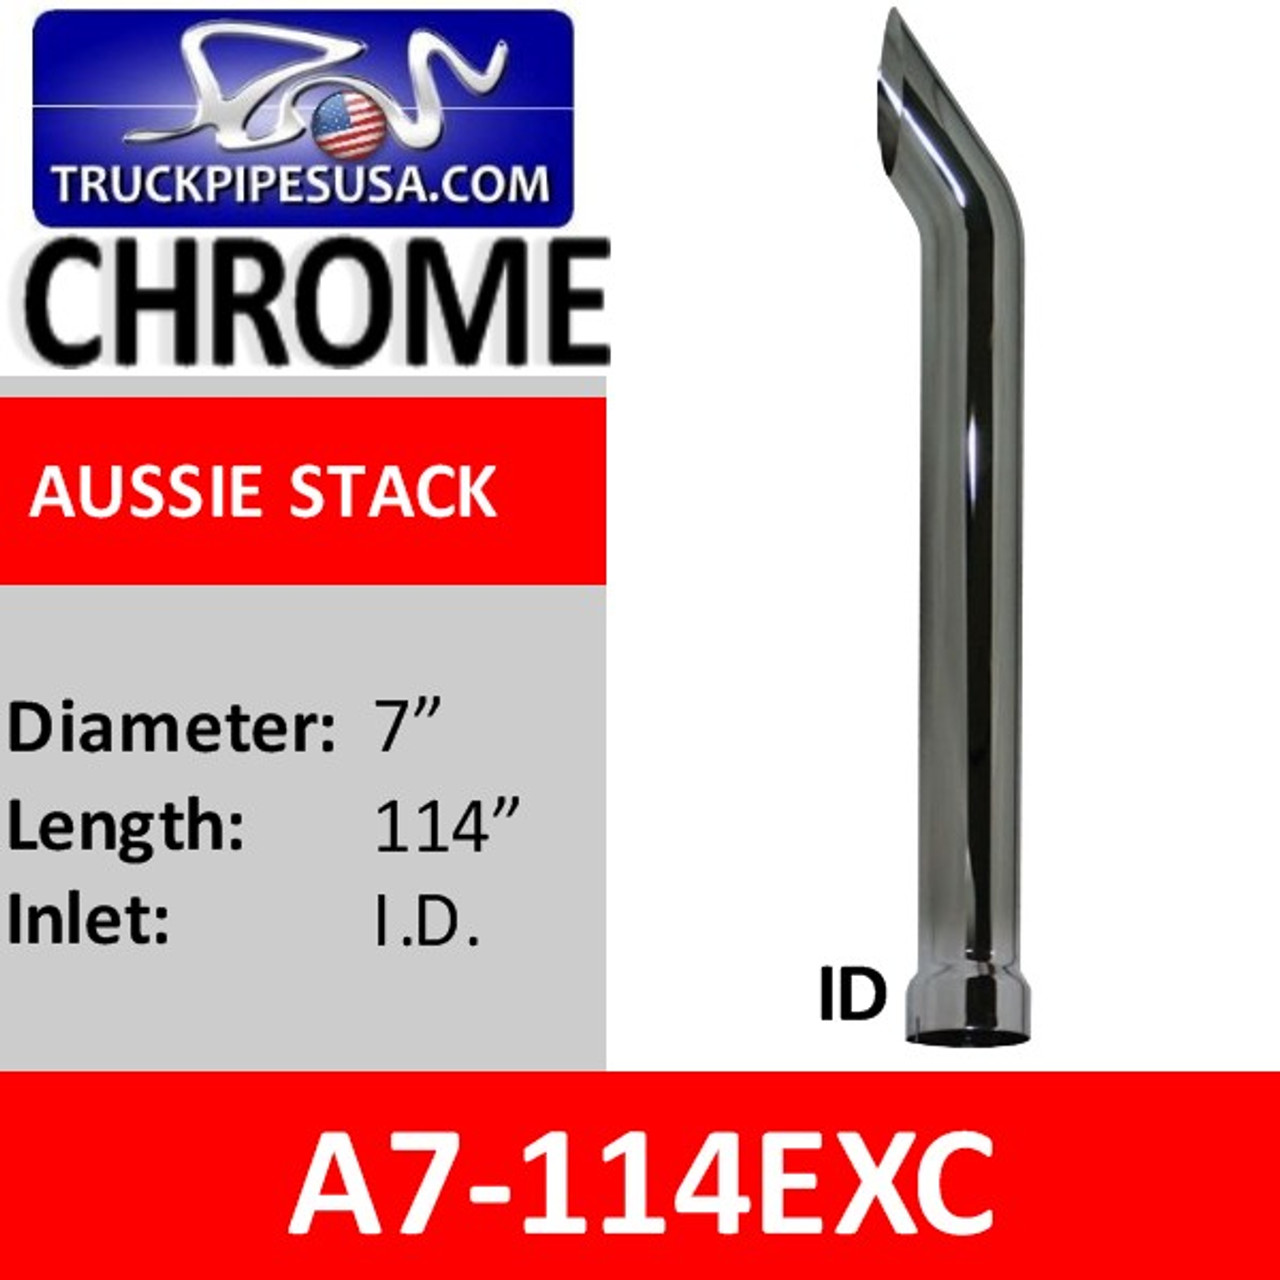 "A7-114EXC | 7"" x 114"" Aussie Cut Chrome exhaust stack pipe"